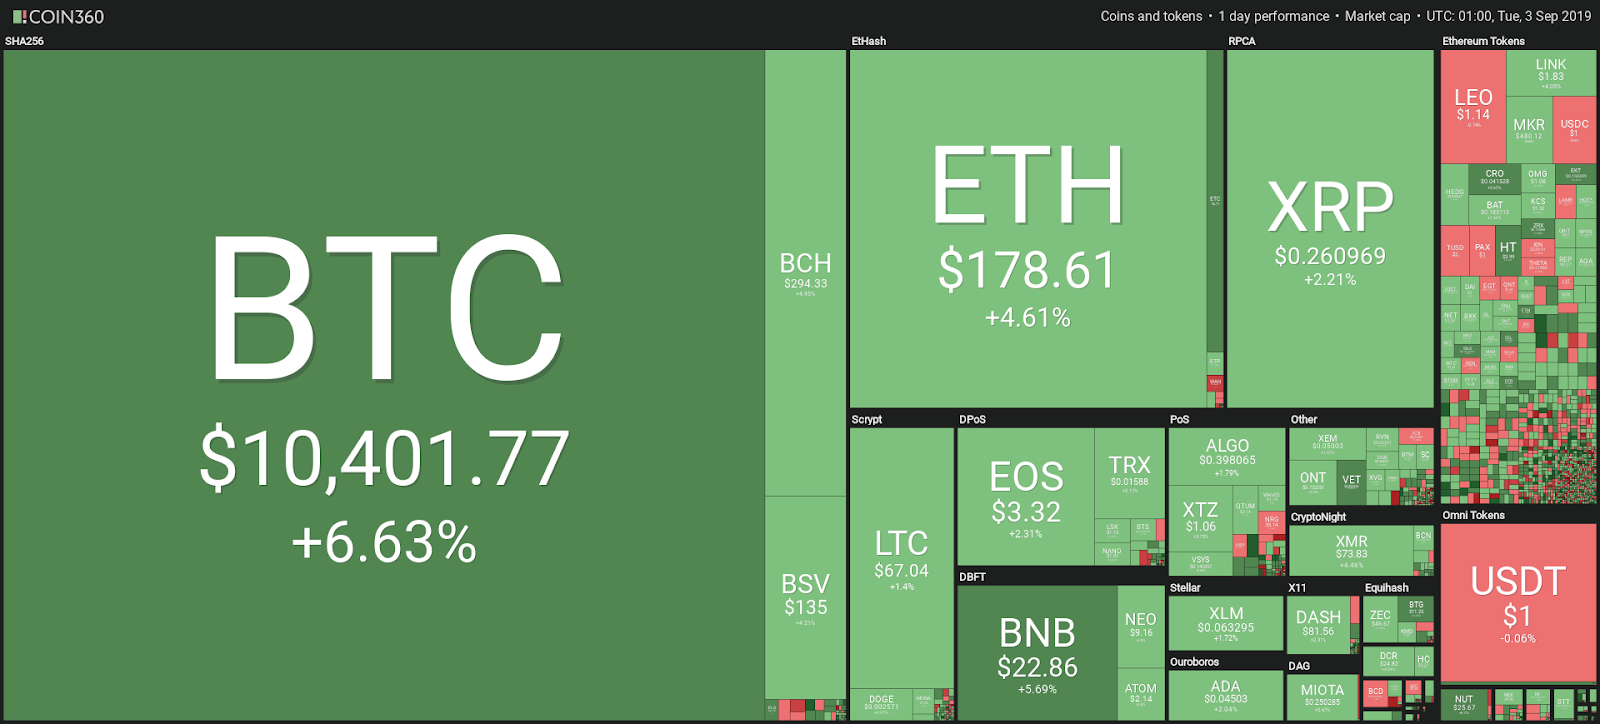 Most Cryptocurrencies in the Green as Bitcoin Price Hits $10,400, CryptoCoinNewsHub.com